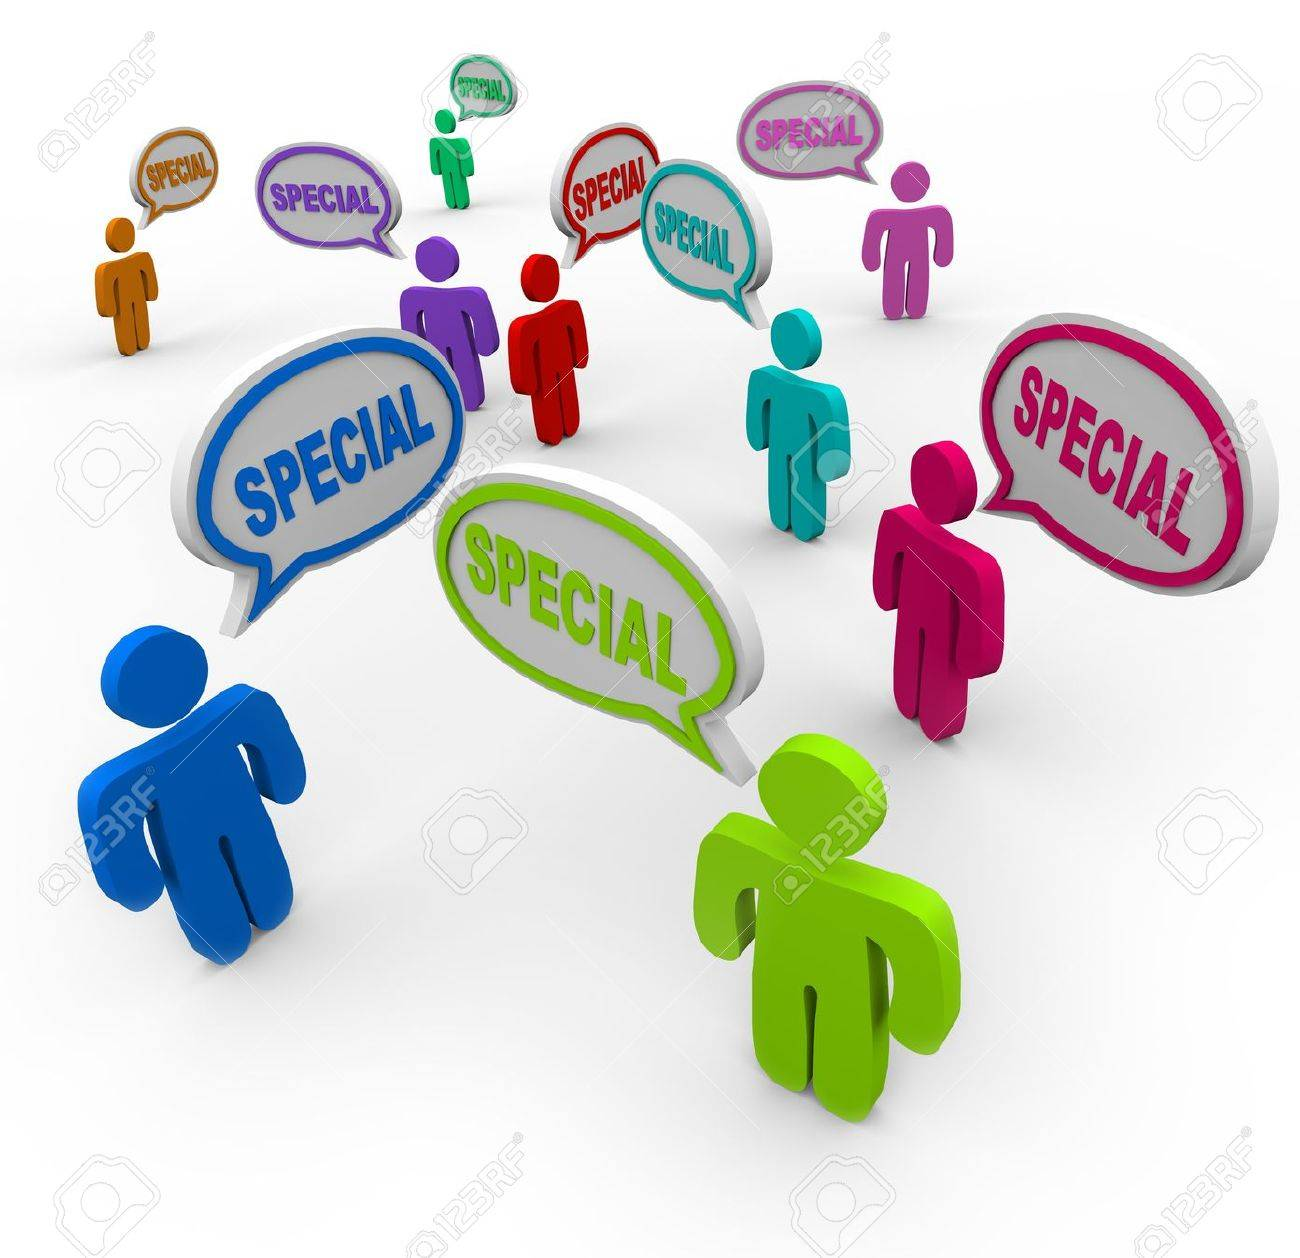 a group of people talking speech bubbles and the word special a group of people talking speech bubbles and the word special to illustrate they are